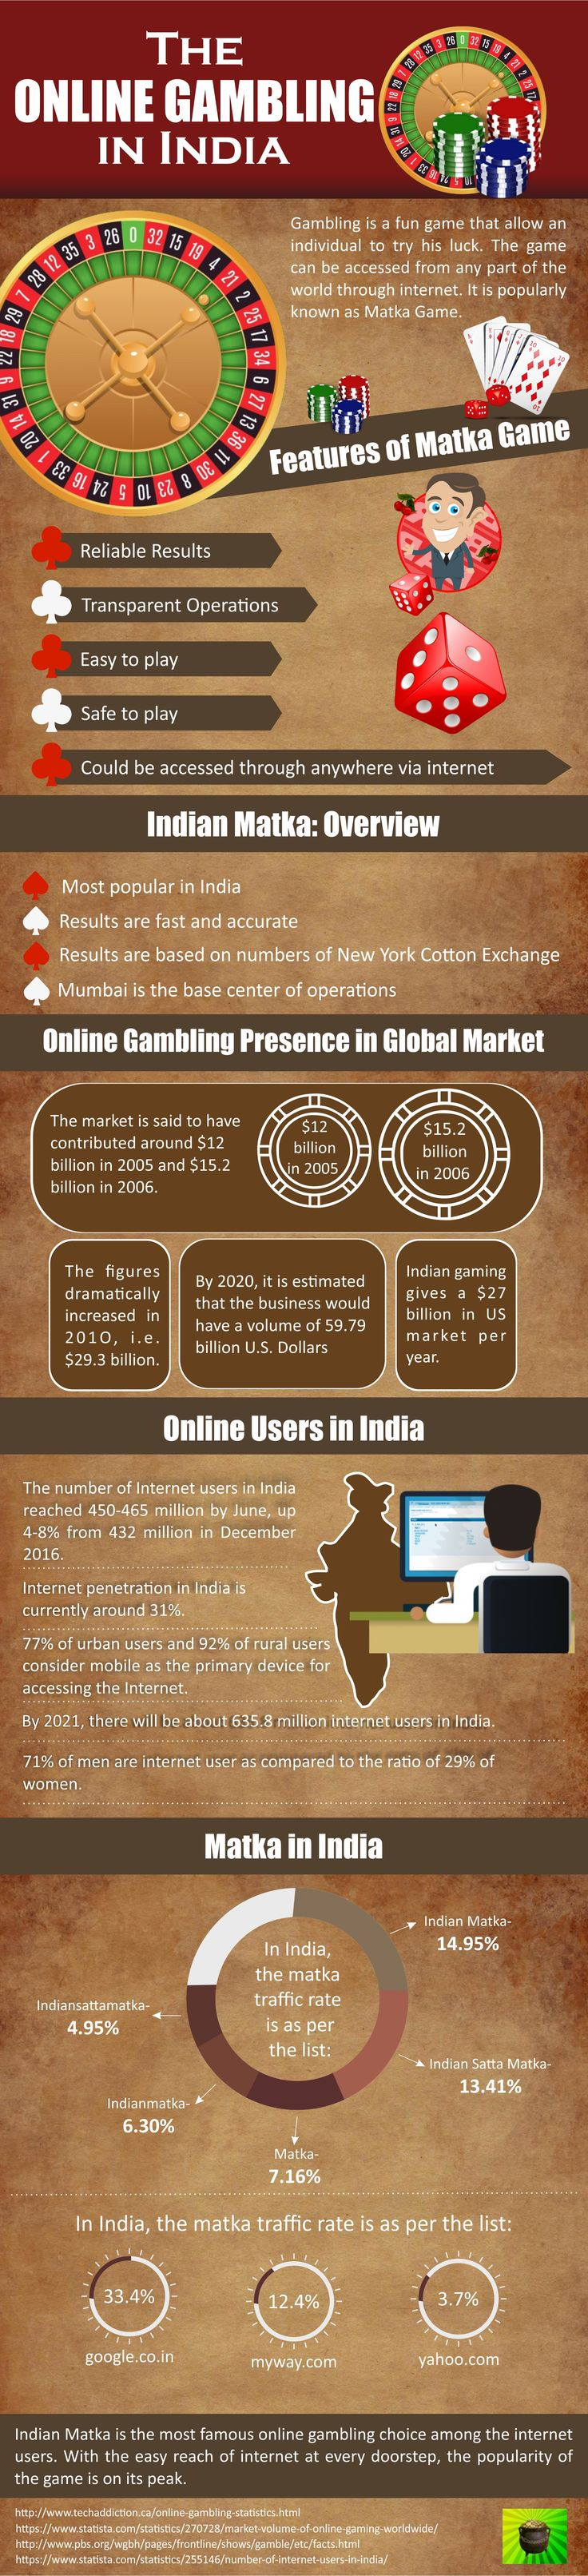 Gambling is a fun game that allow an individual to try his luck. The game can be accessed from any part of the world through internet. It is popularly known as Matka Game. Visit us:http://www.indianmatka.com/